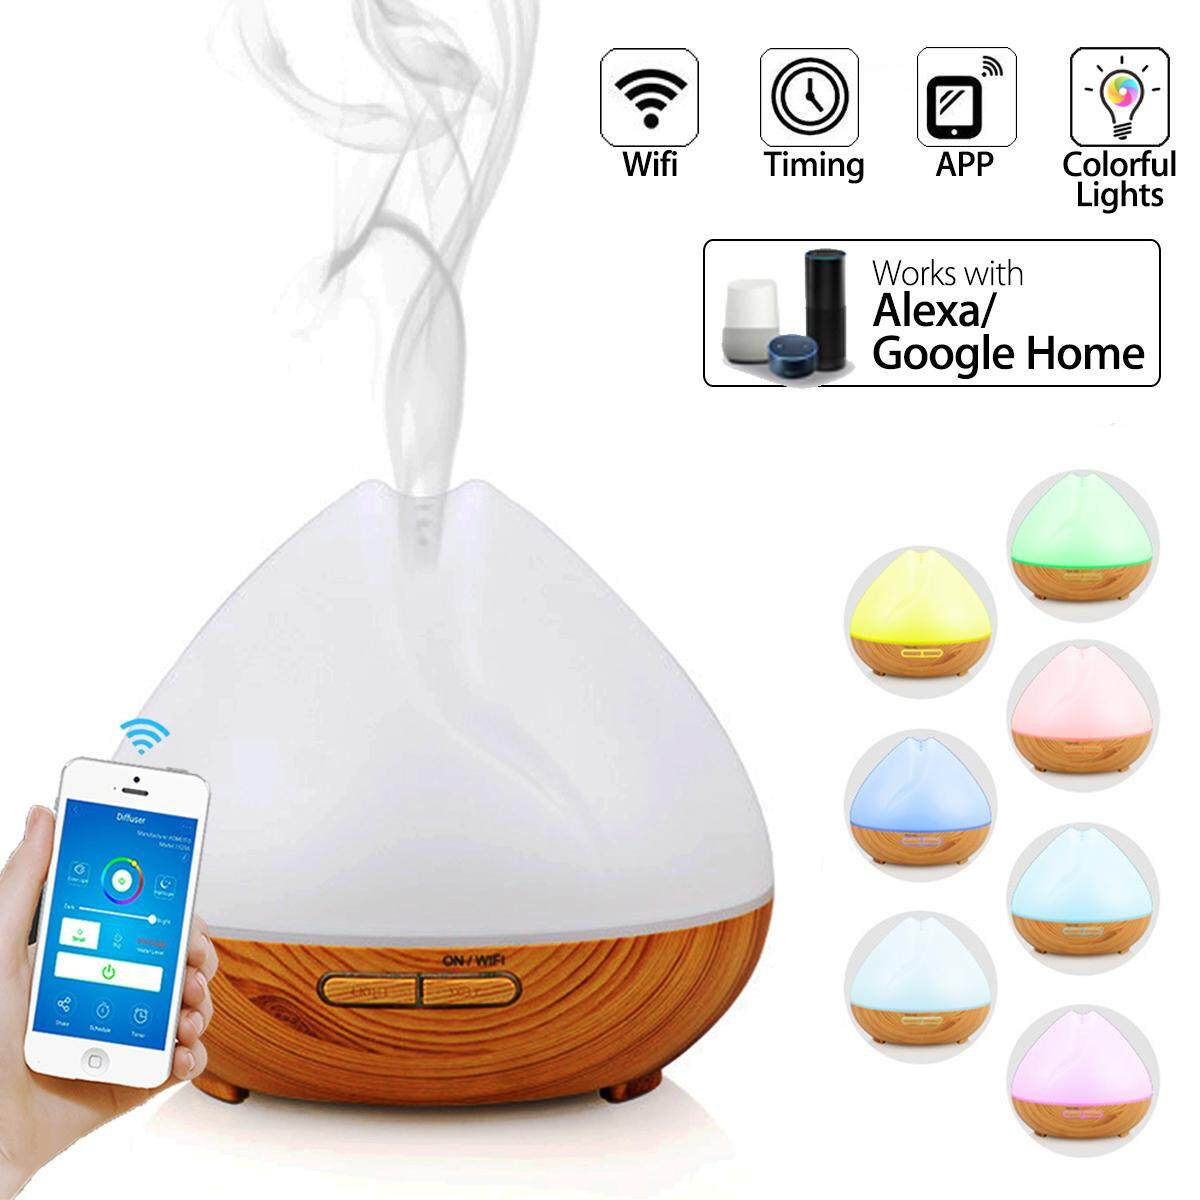 5PCS WiFi Smart Diffuser Aroma Humidifier APP LED With Amazon Alexa Google Home UK Plug